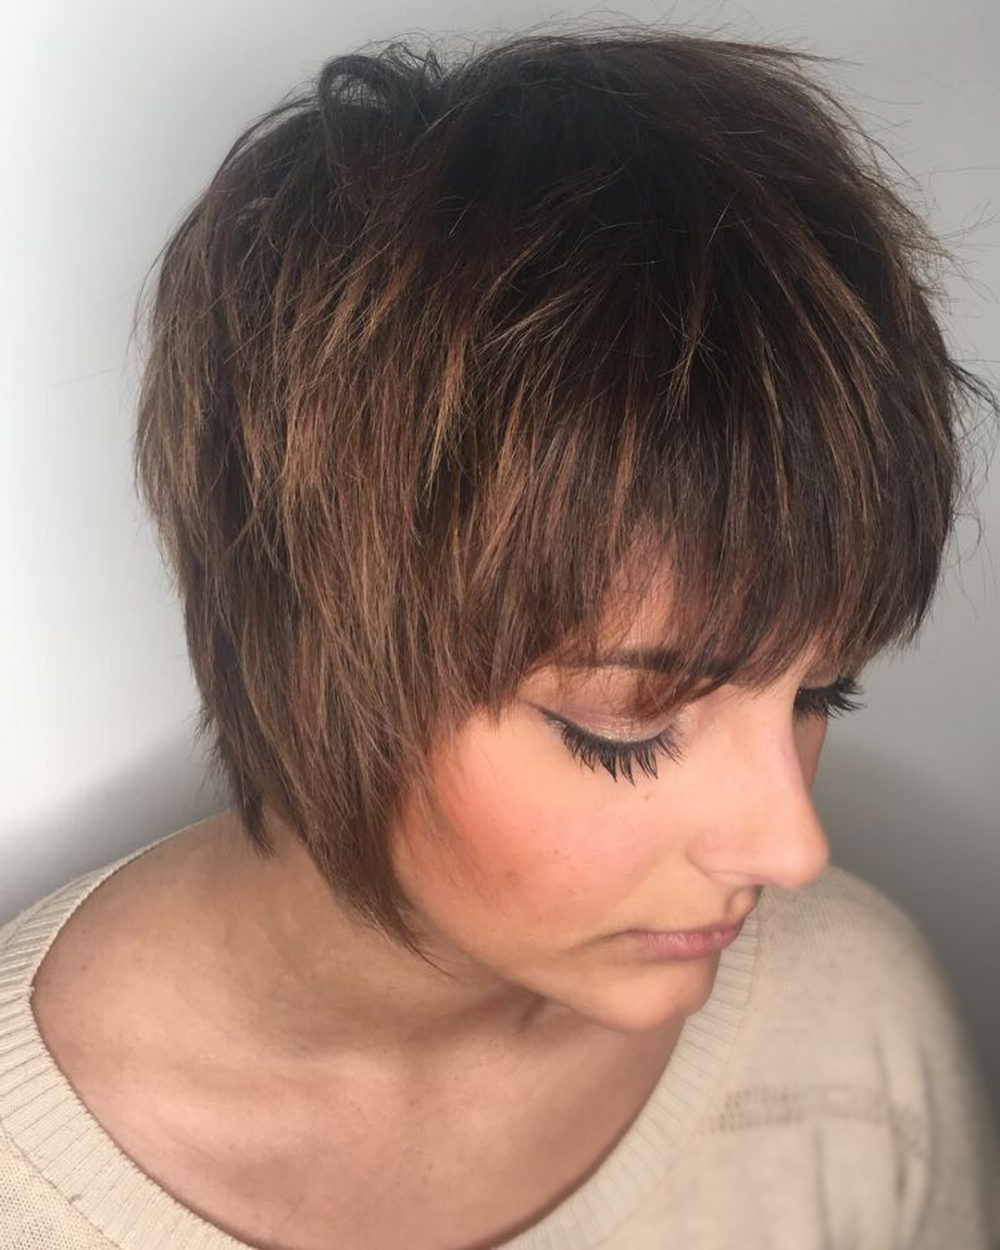 Top 25 Short Shag Haircuts Of 2019 For Favorite Shorter Shag Haircuts With Razored Layers (View 18 of 20)